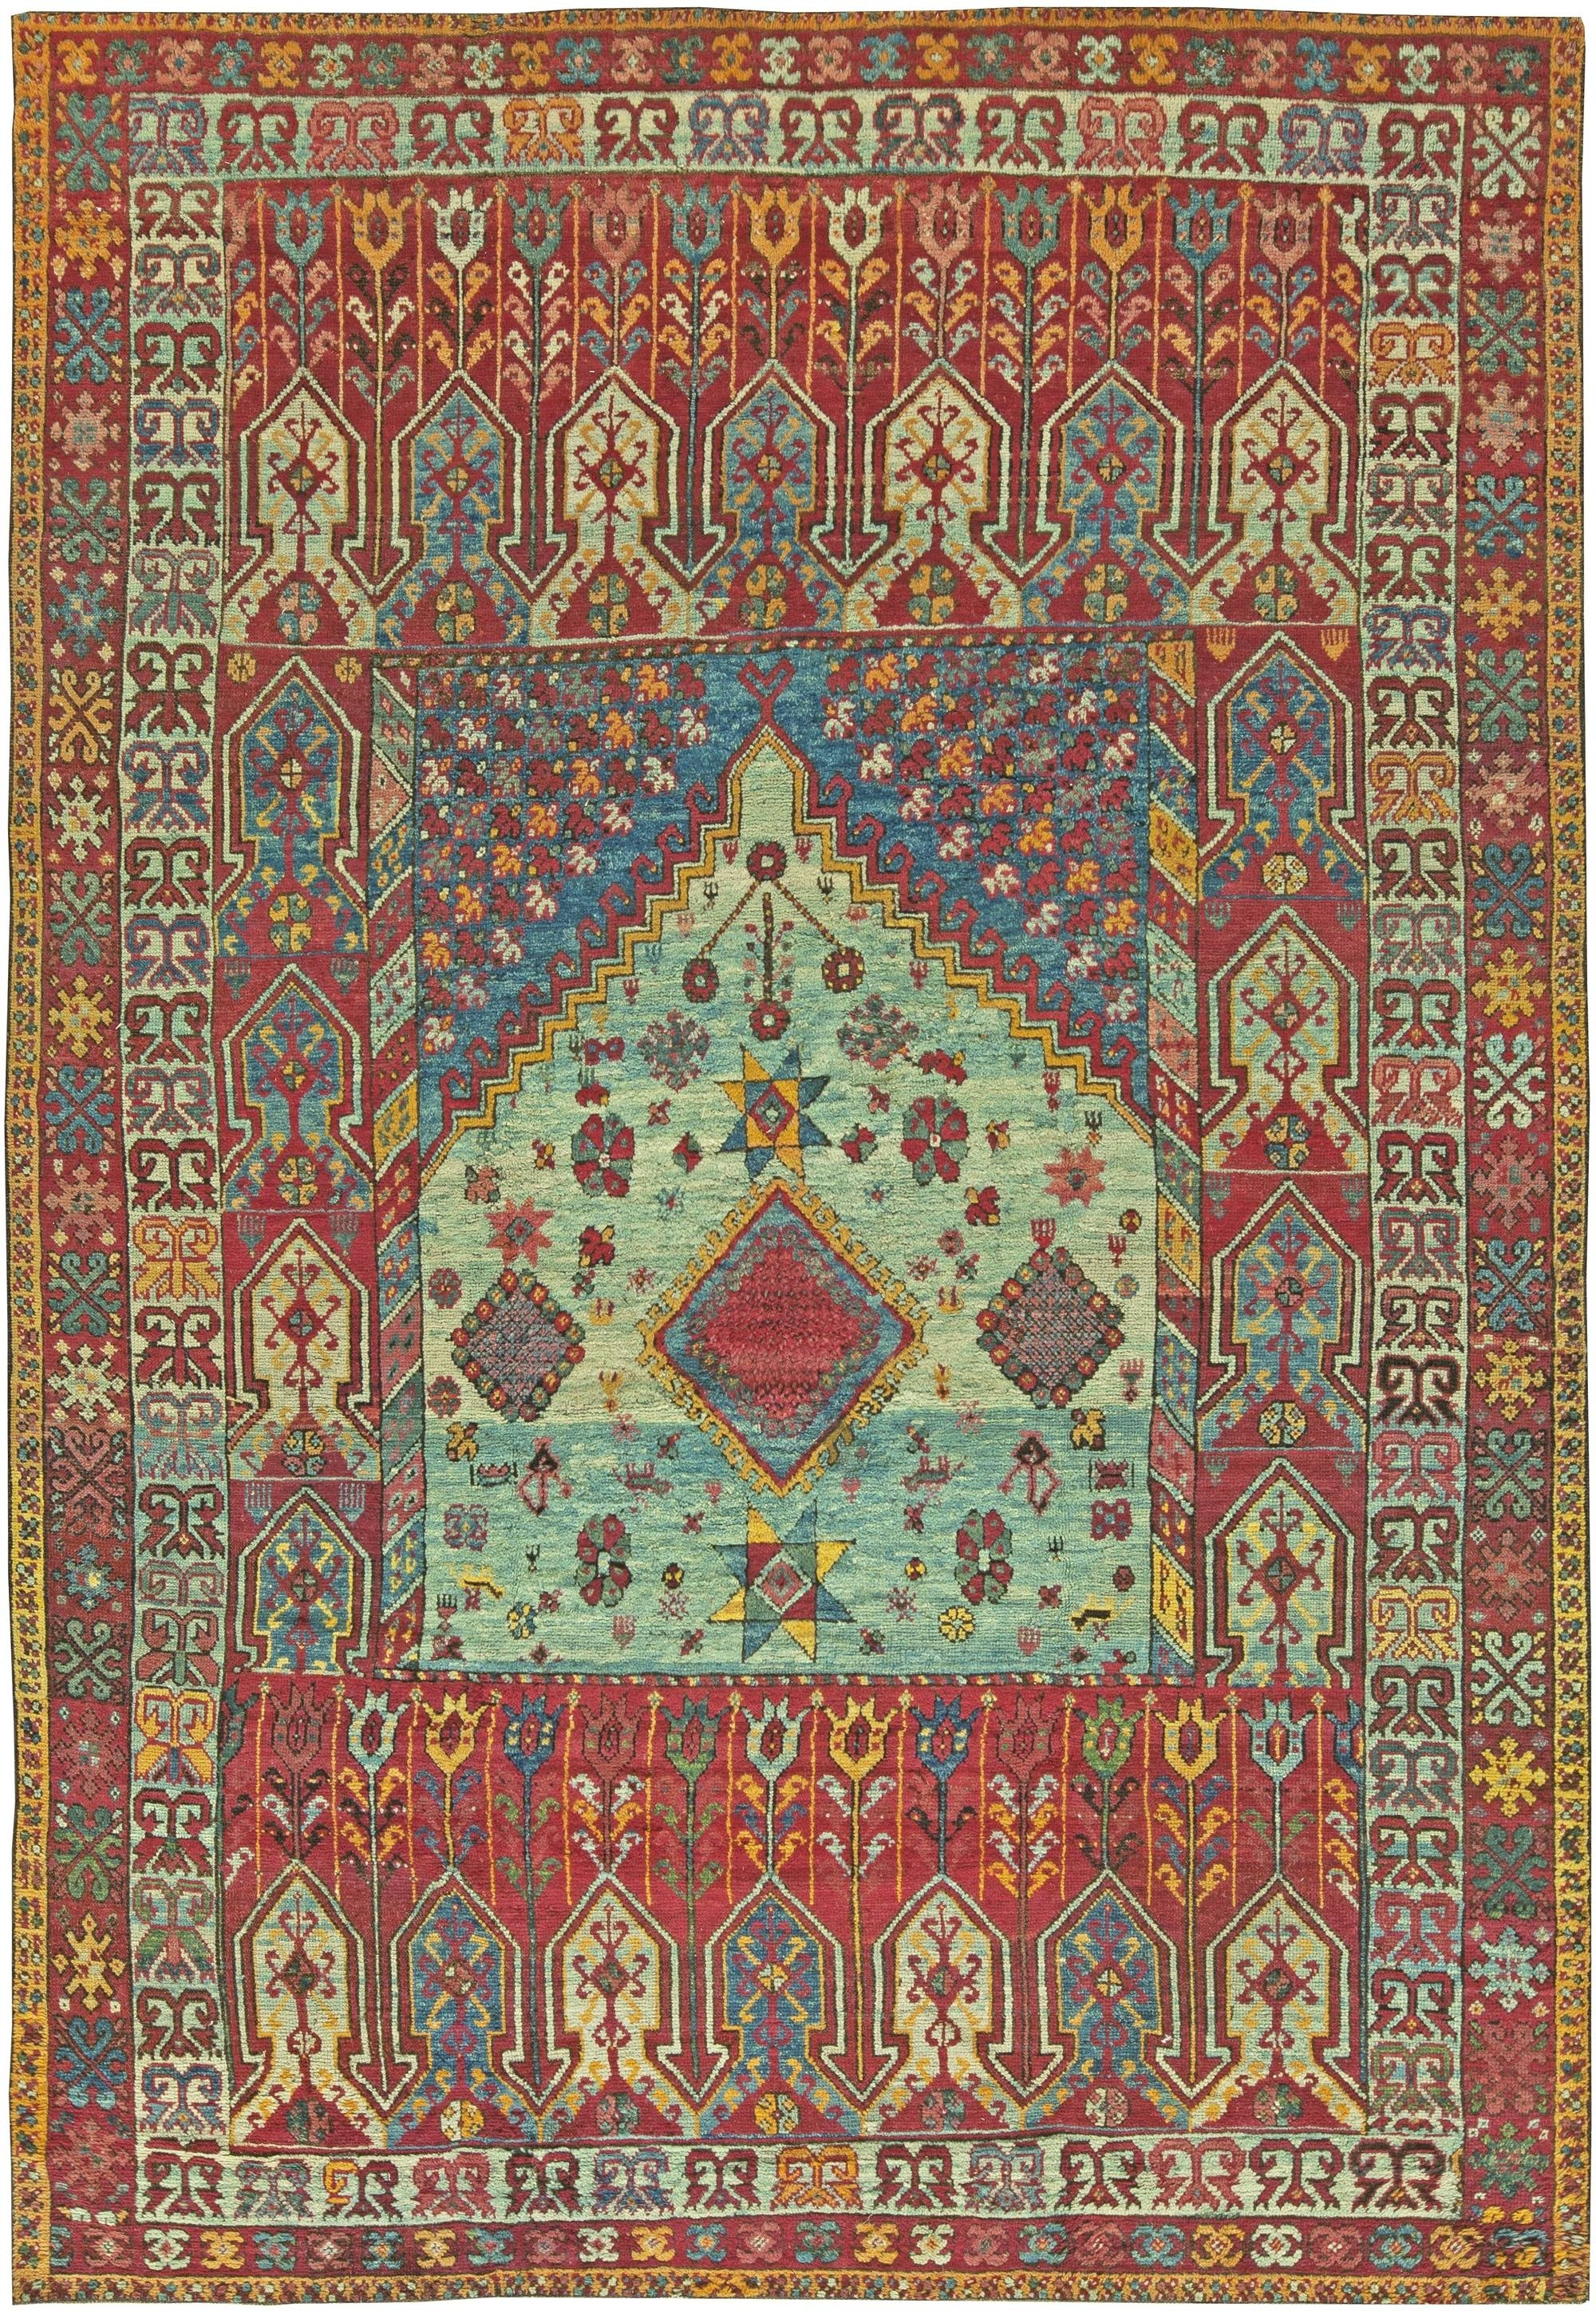 Vintage Moroccan Rug Bb6039 Doris Leslie Blau Pertaining To Moroccan Rugs (Image 13 of 15)